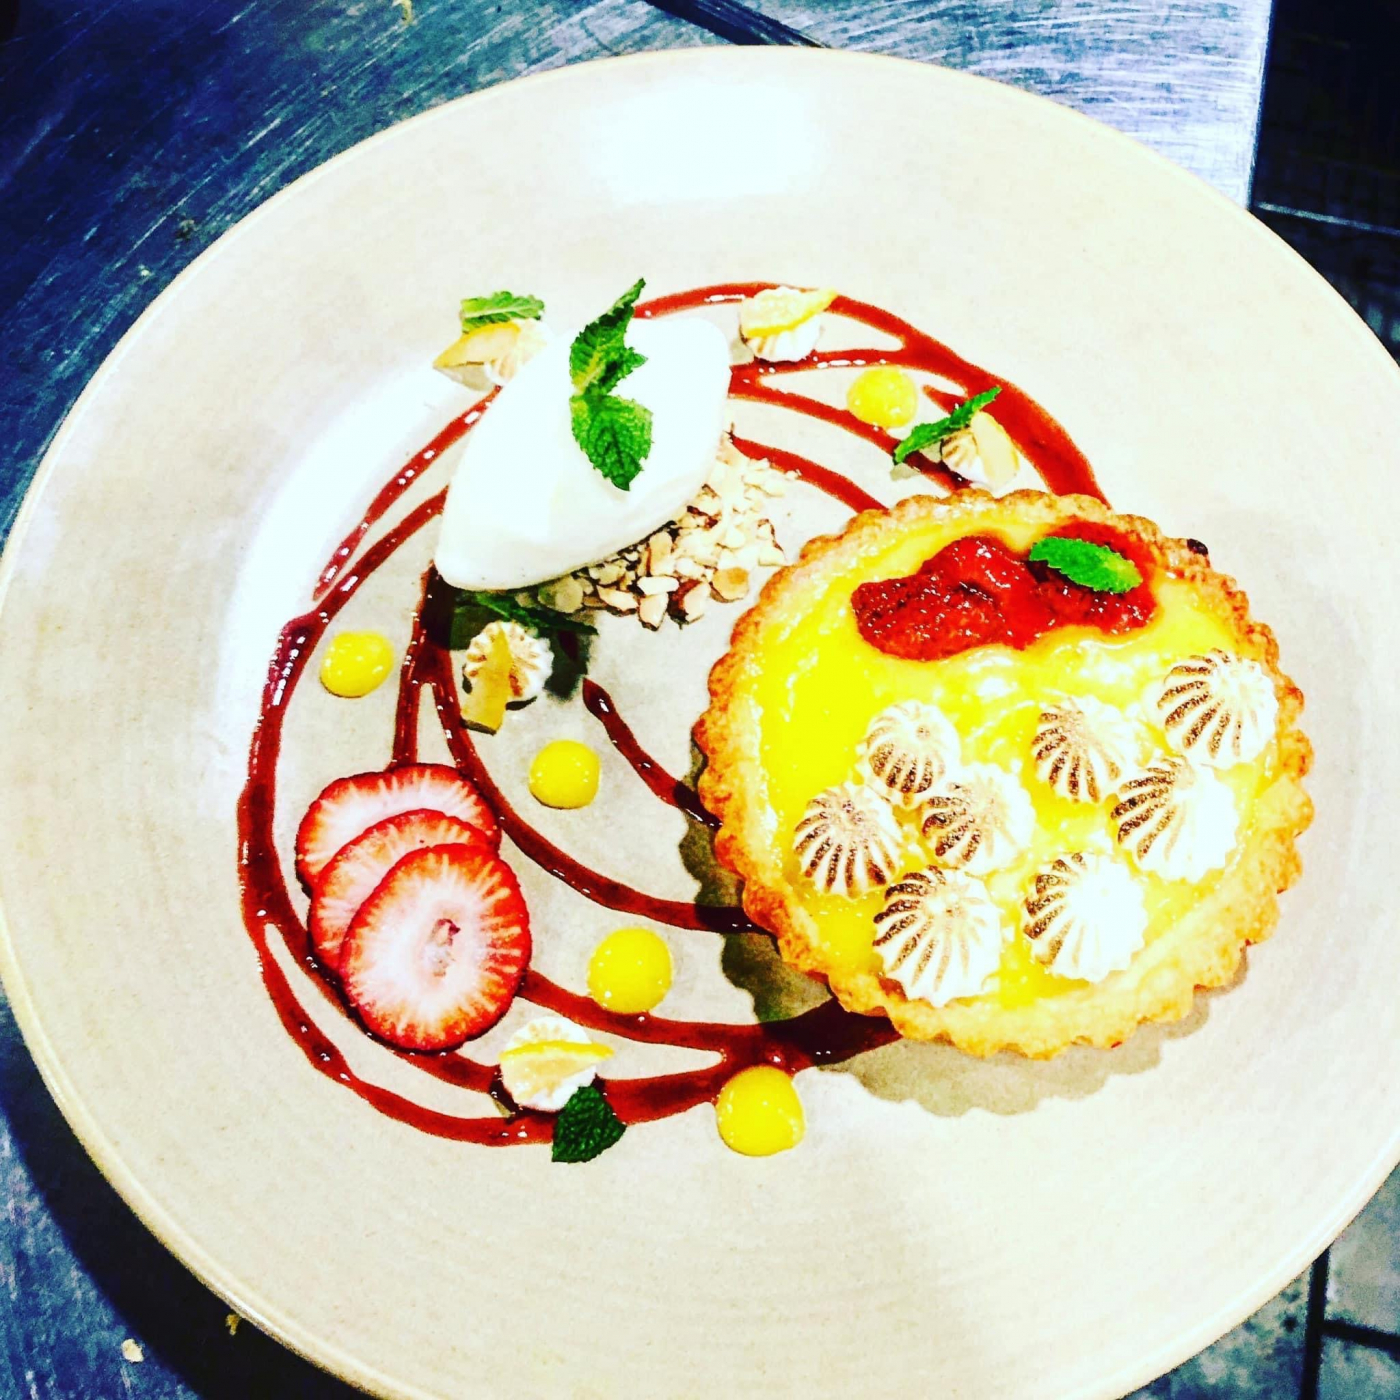 Lemon meringue tart, confit strawberry, buttermilk sorbet, almond crumble, candied lemon rind, strawberry gel